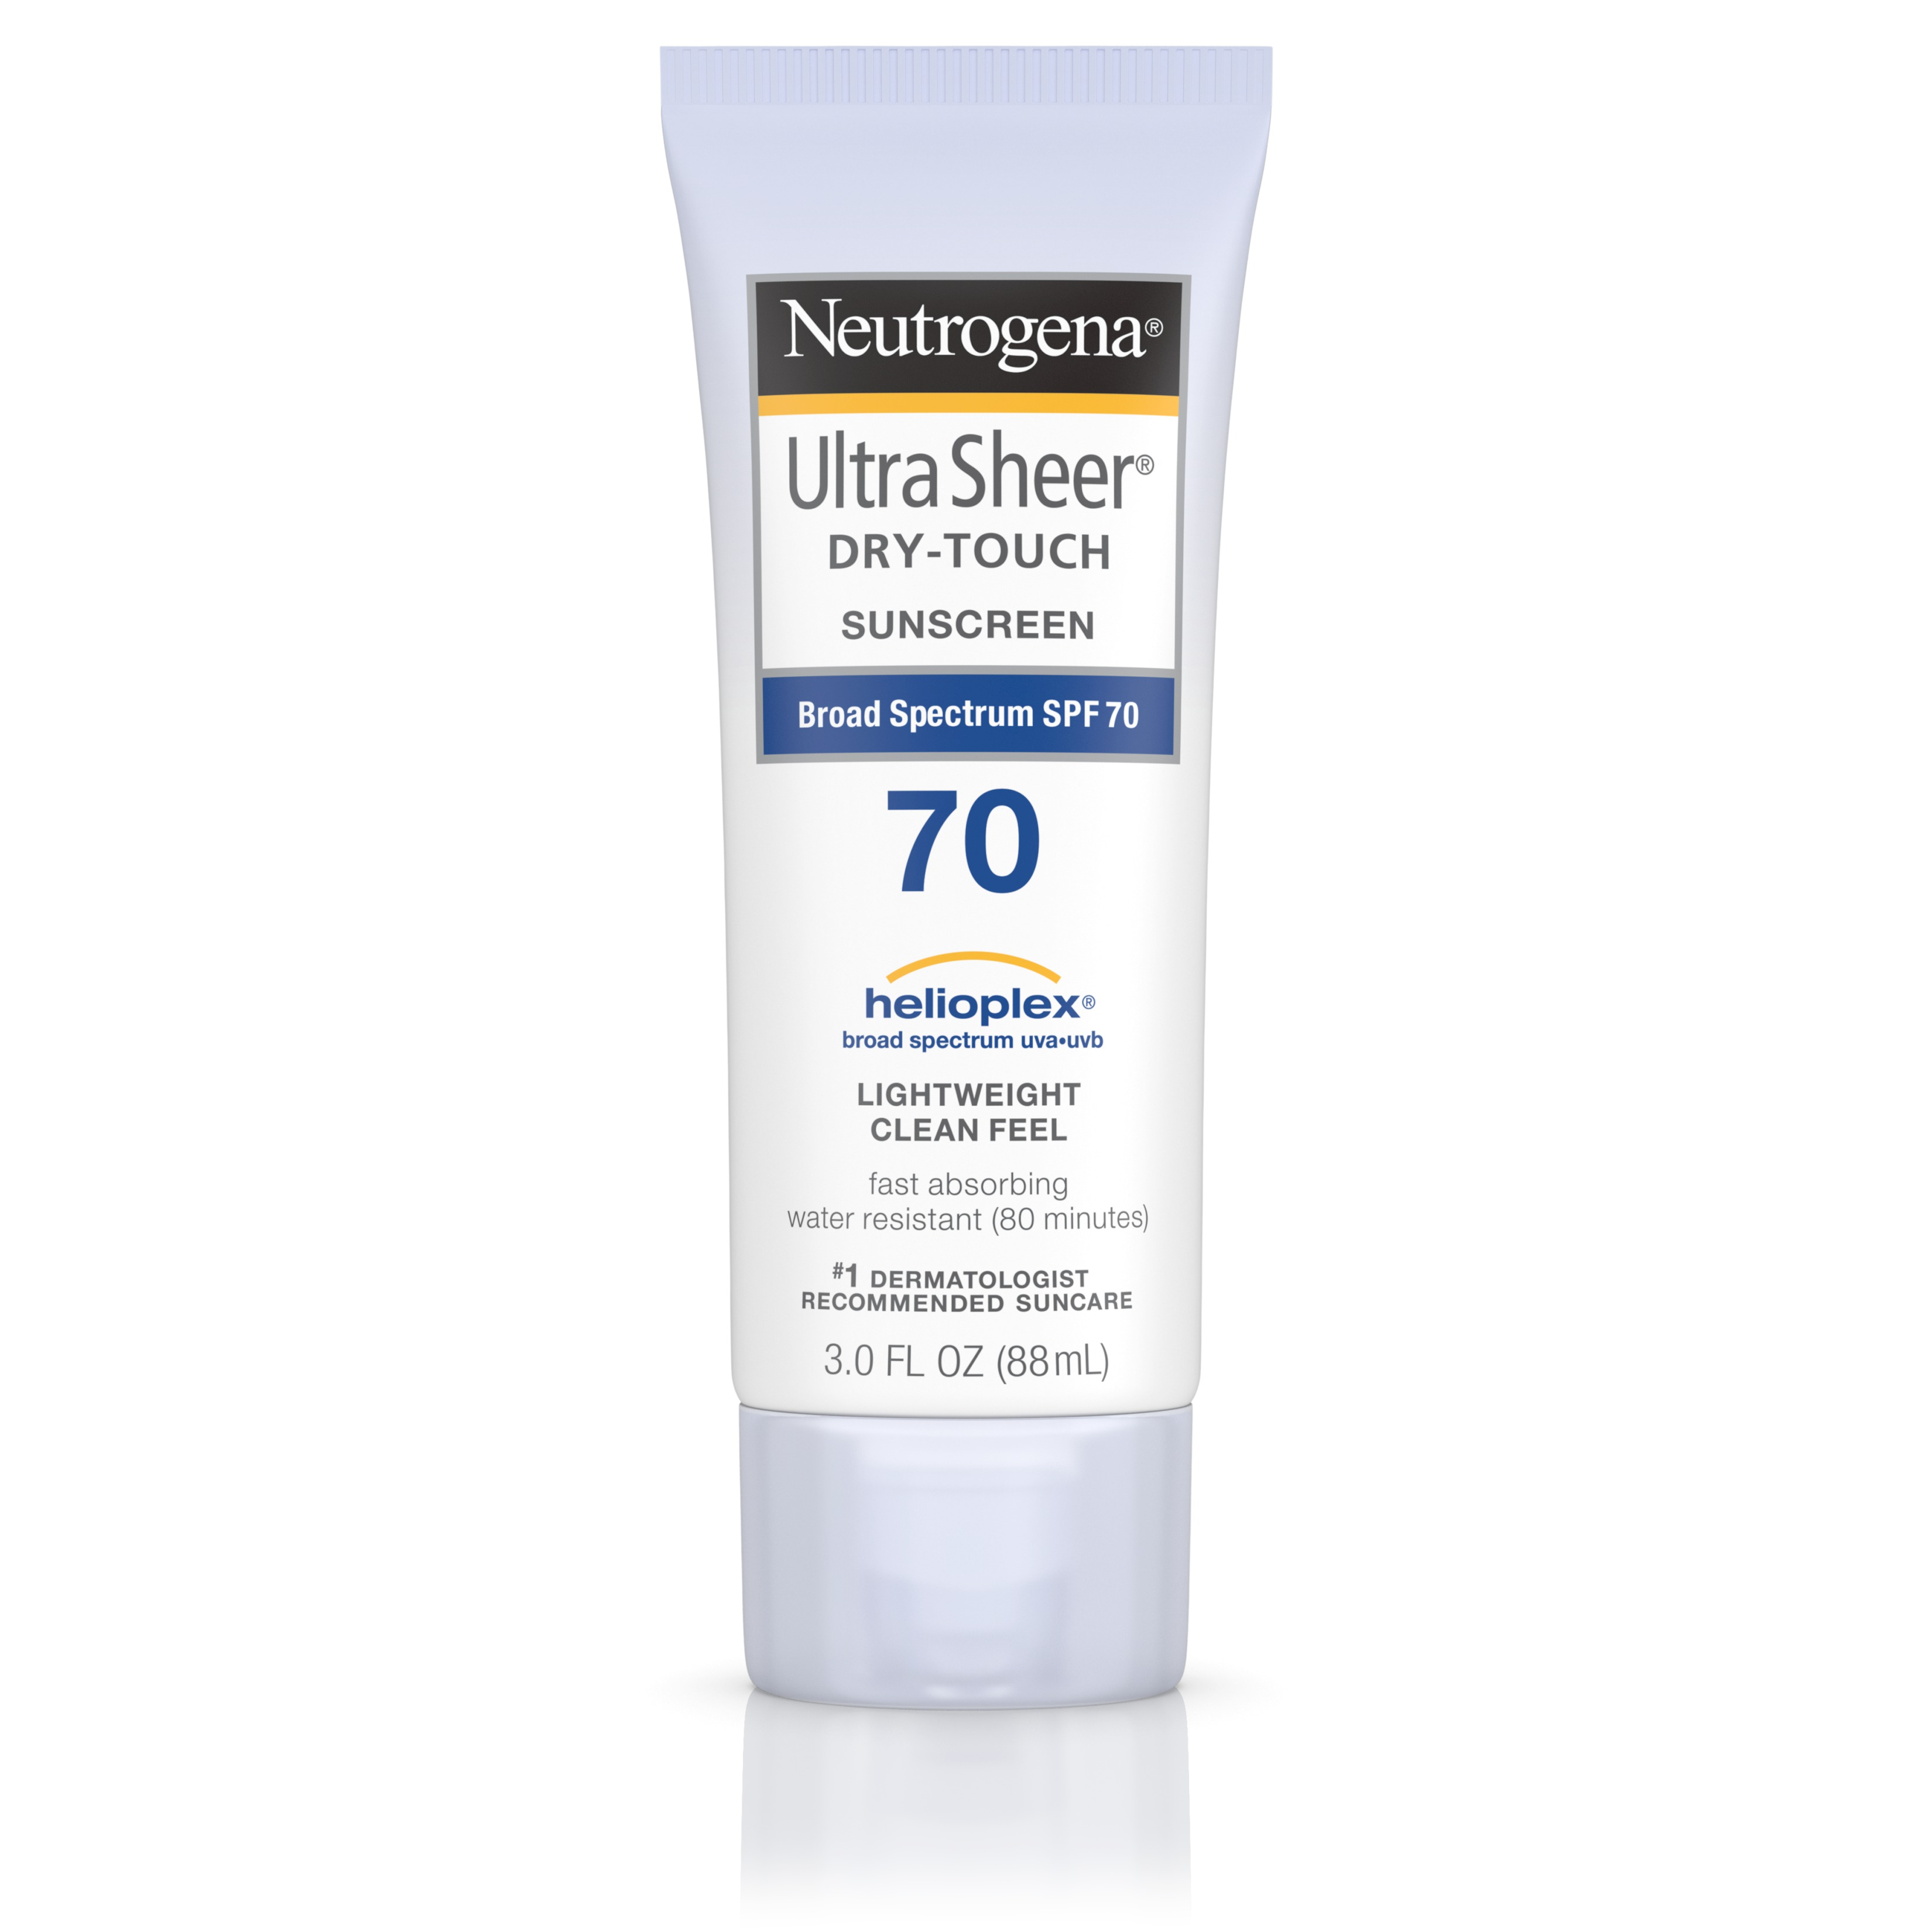 Neutrogena Ultra Sheer Dry-Touch Sunscreen, Broad Spectrum Spf 70, 3 Oz. - Walmart.com